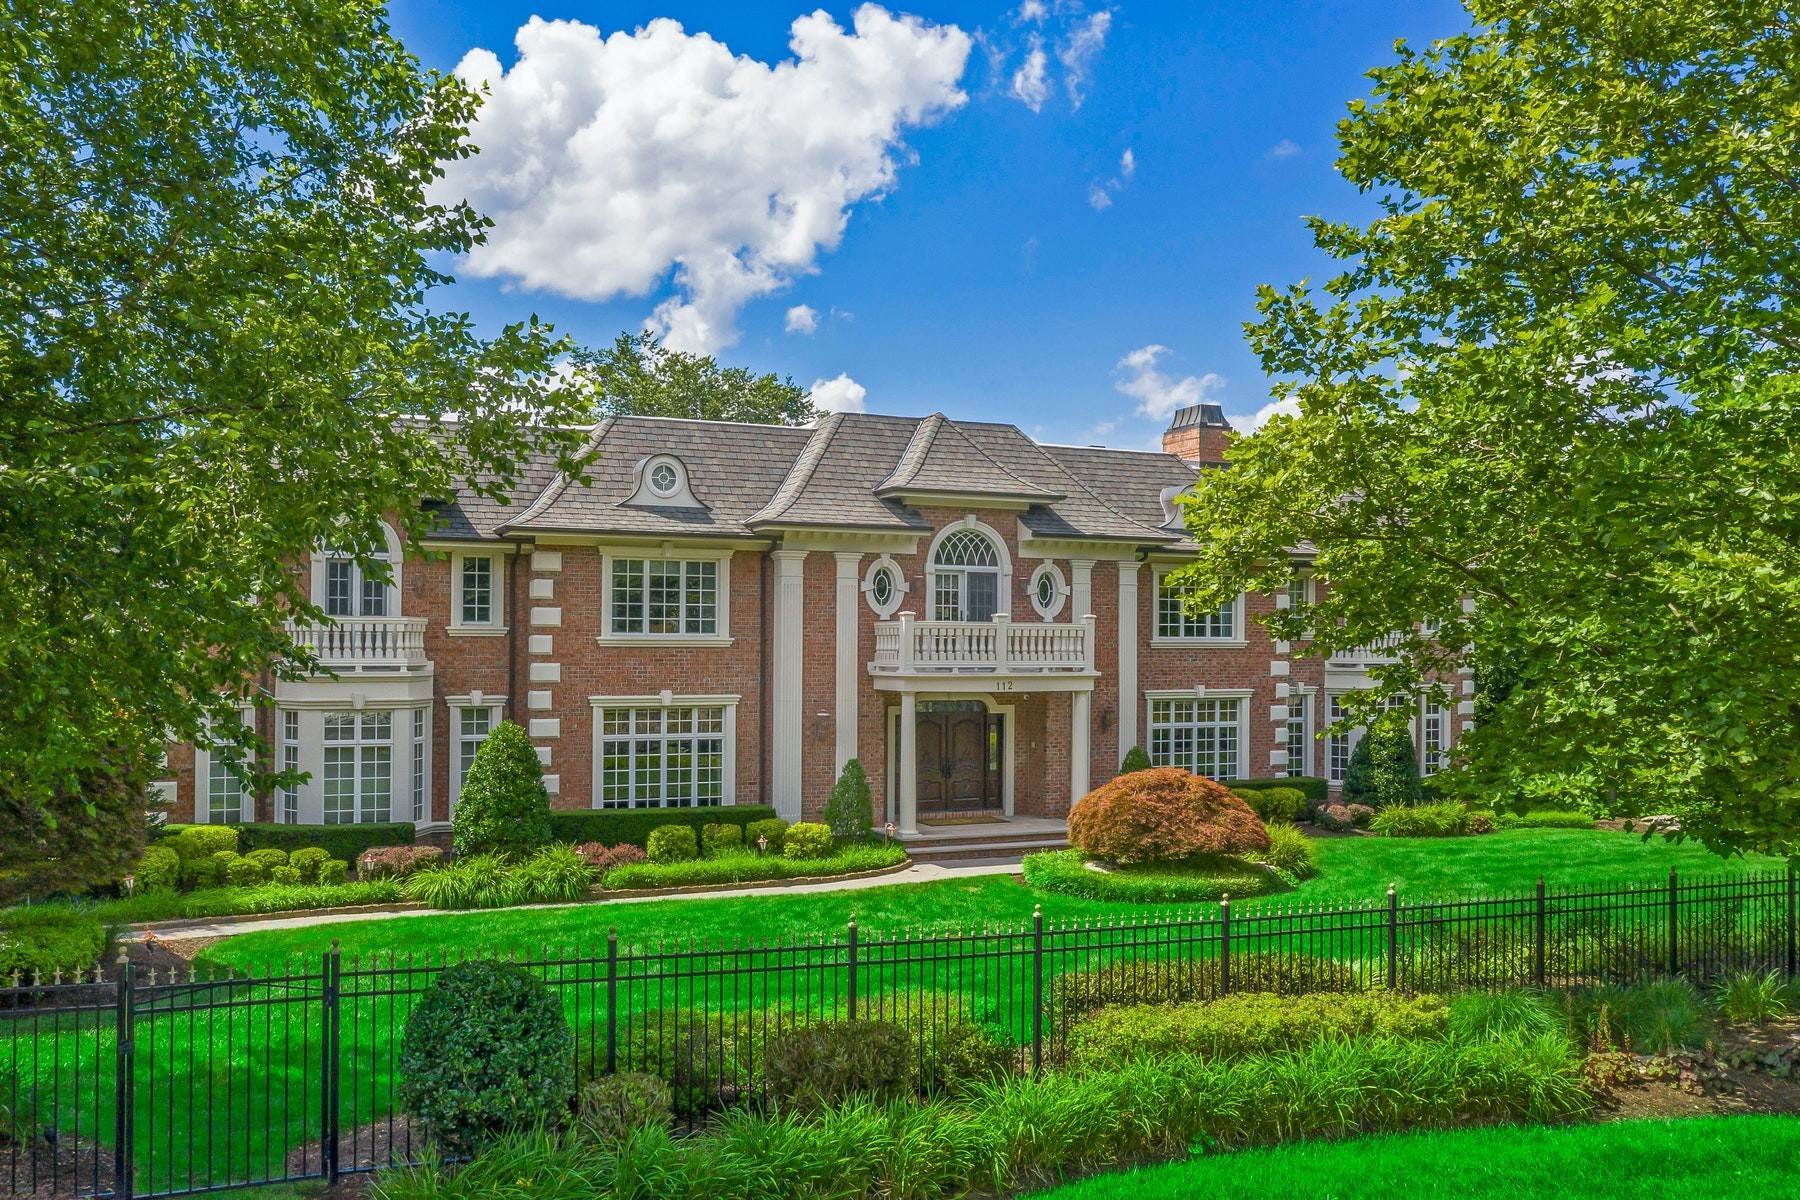 Single Family Homes for Sale at Tree Lined Cul-de-sac 112 Garden Ct Franklin Lakes, New Jersey 07417 United States